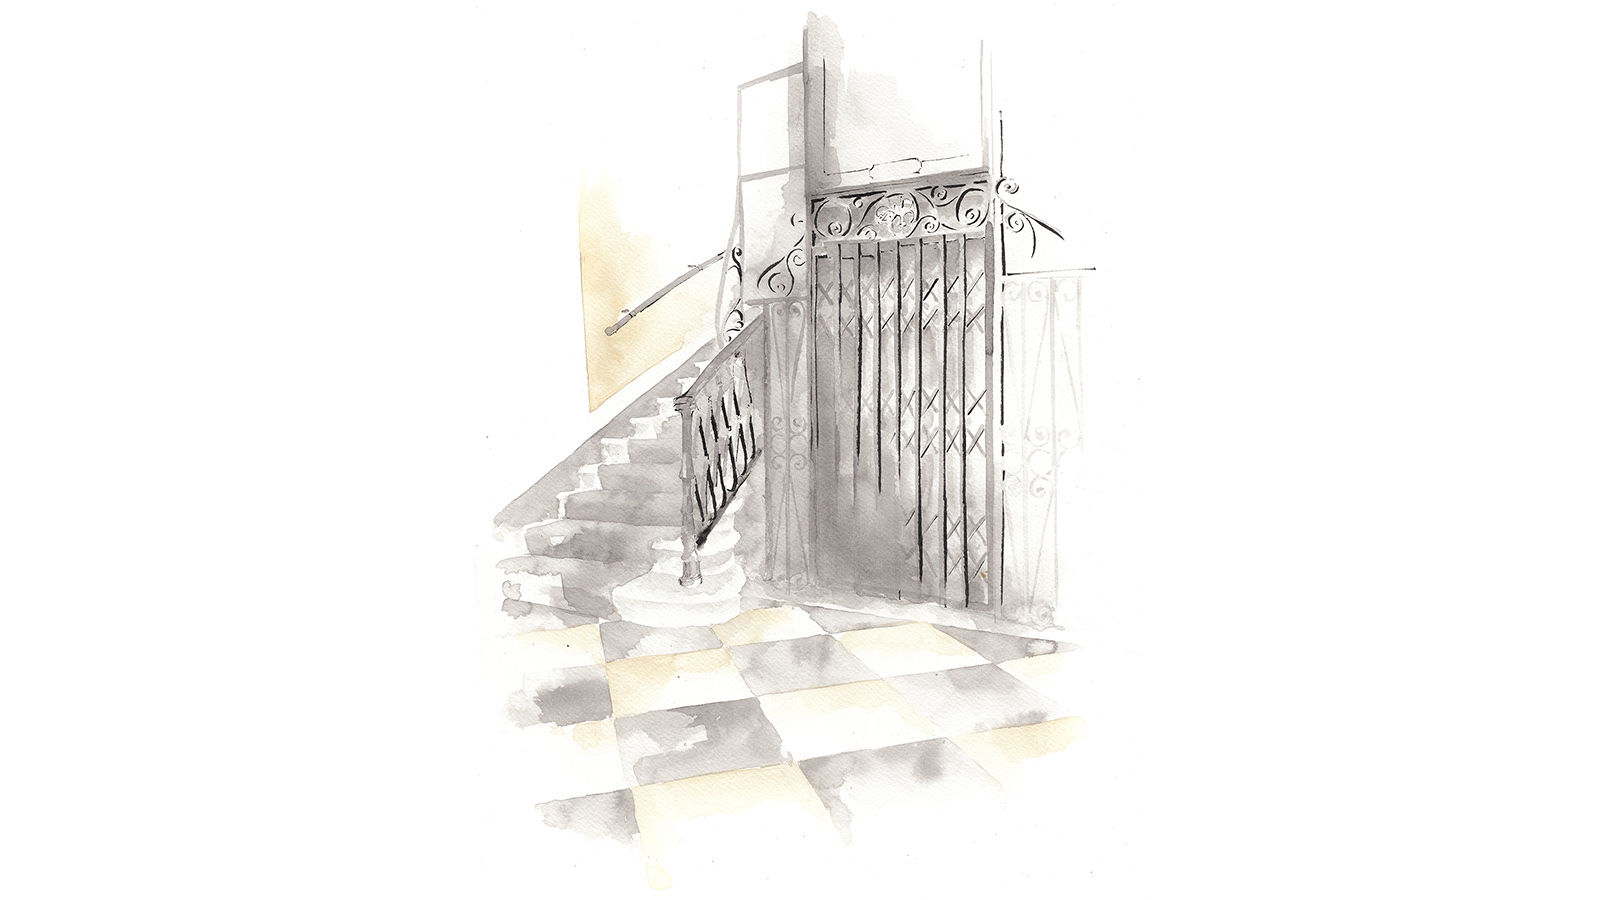 The historic elevator illustration